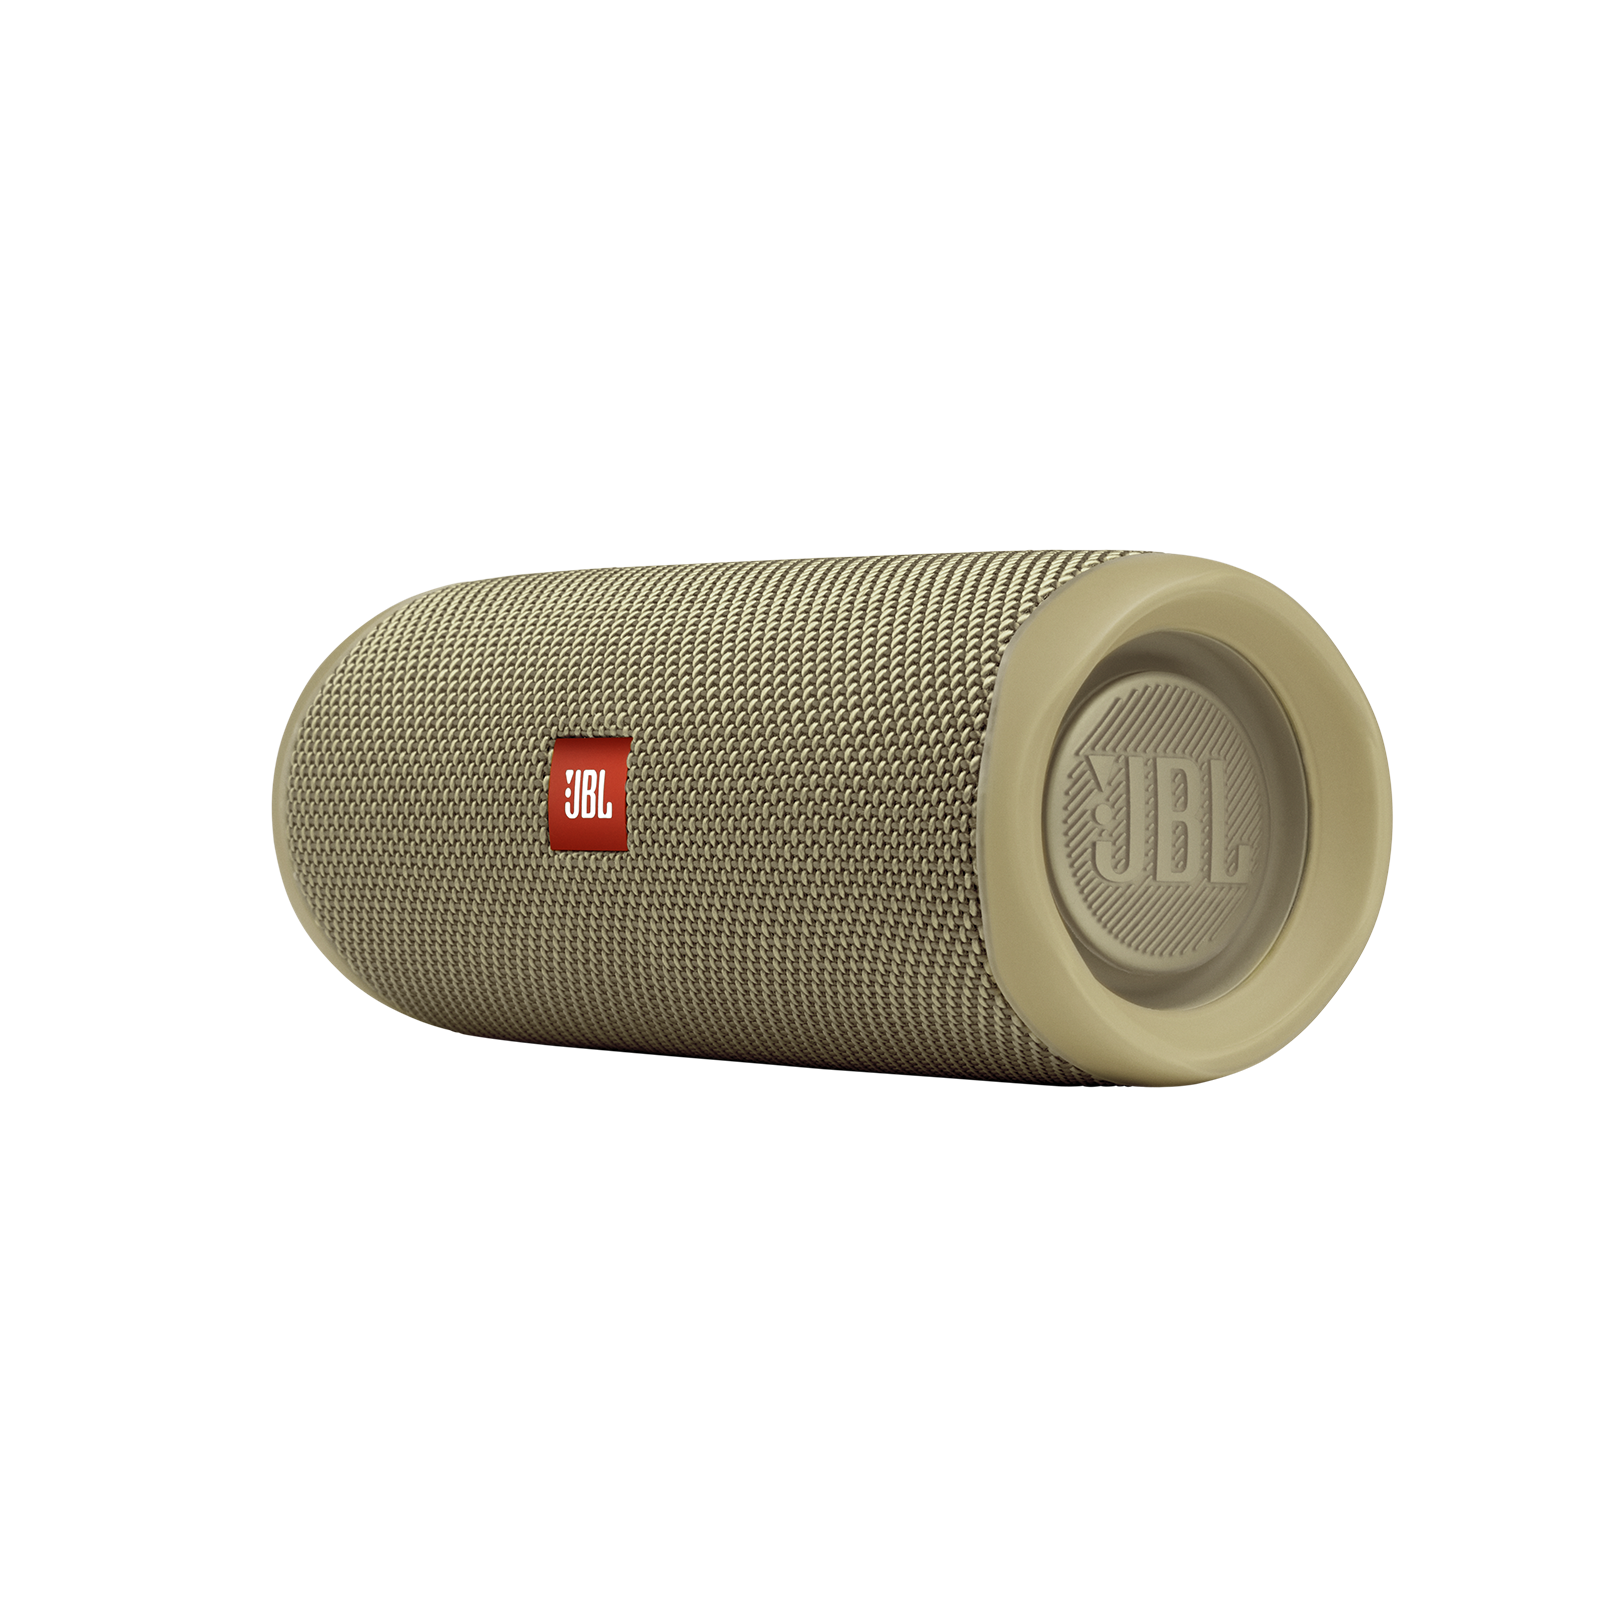 JBL FLIP 5 - Sand - Portable Waterproof Speaker - Detailshot 3